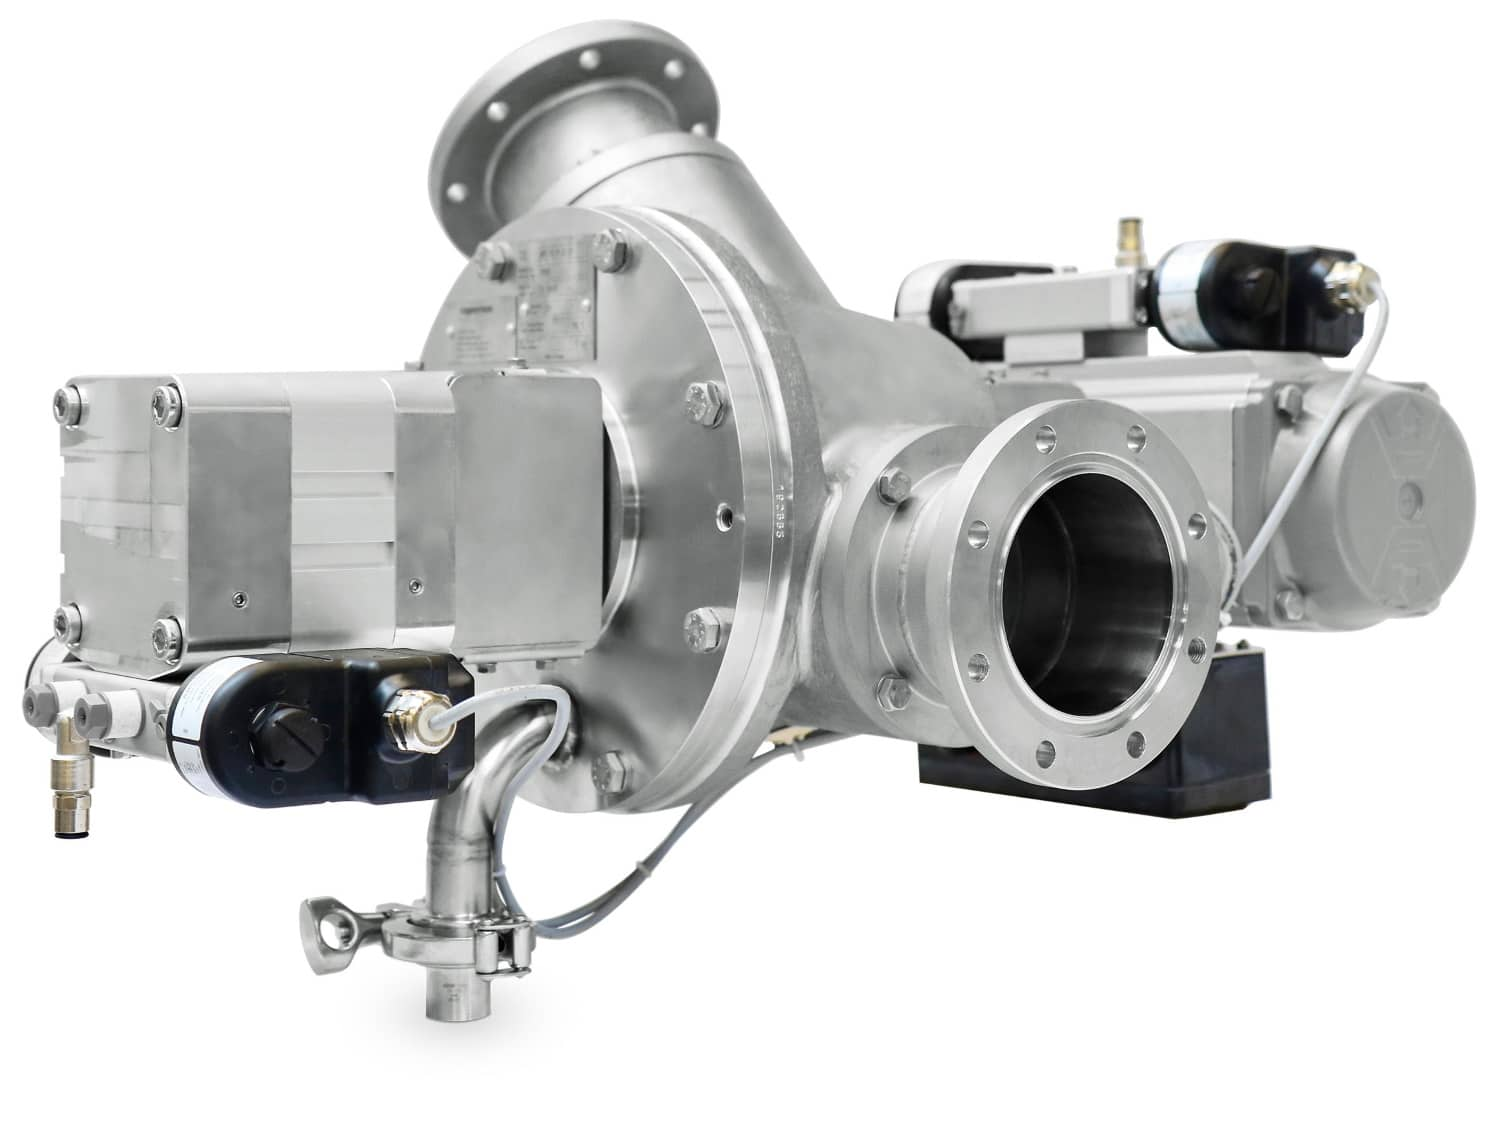 USDA Issues Certificate for Coperion's WYK-CIP Diverter Valve